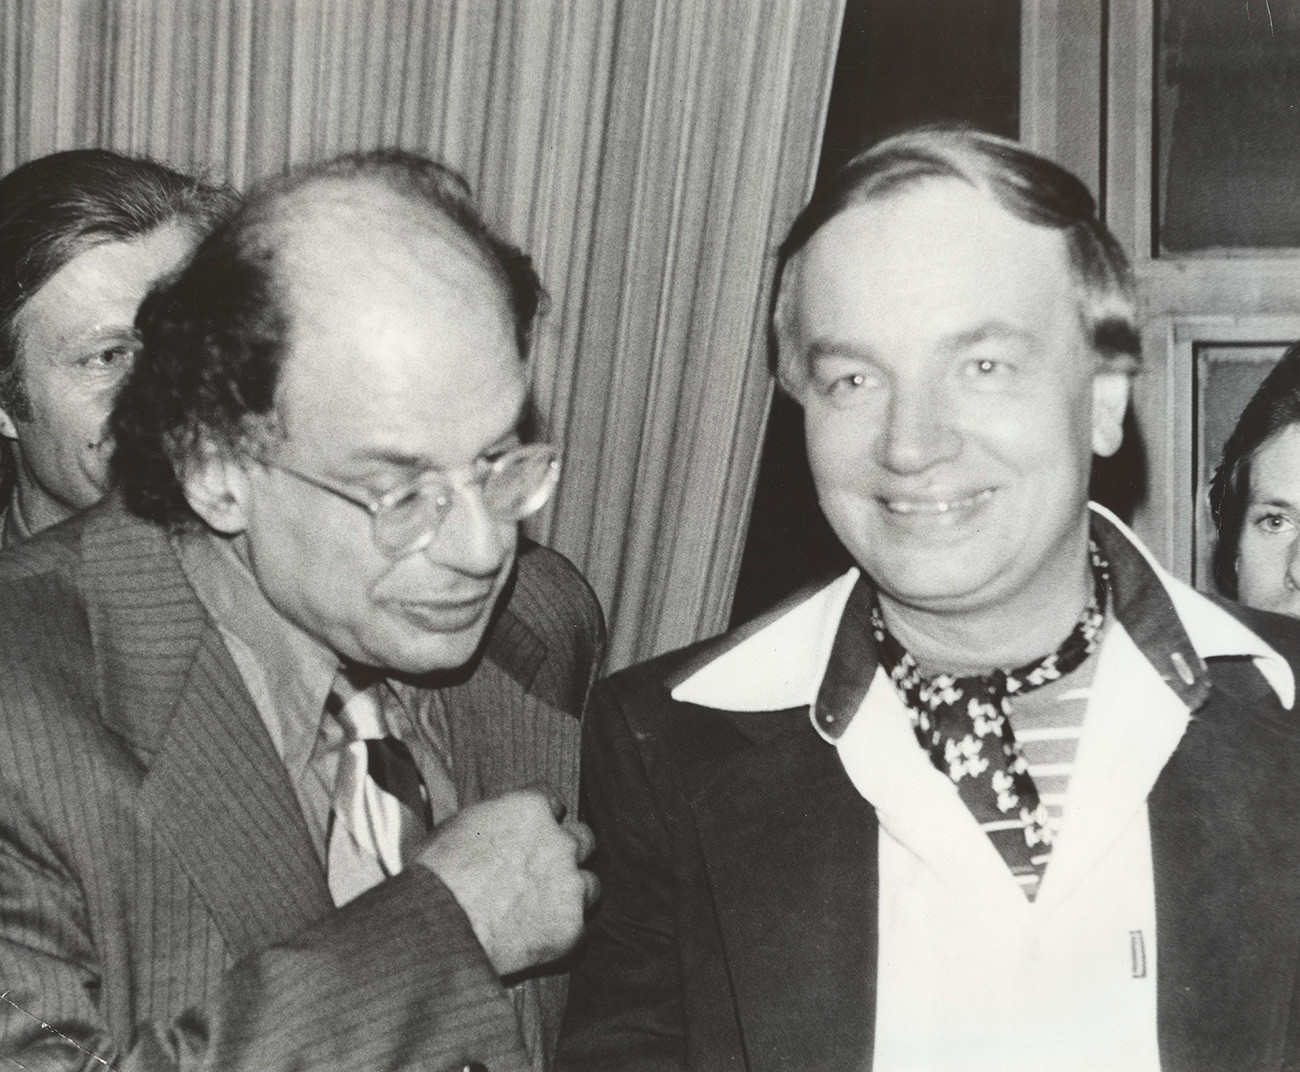 Allen Ginsberg and Voznesenky